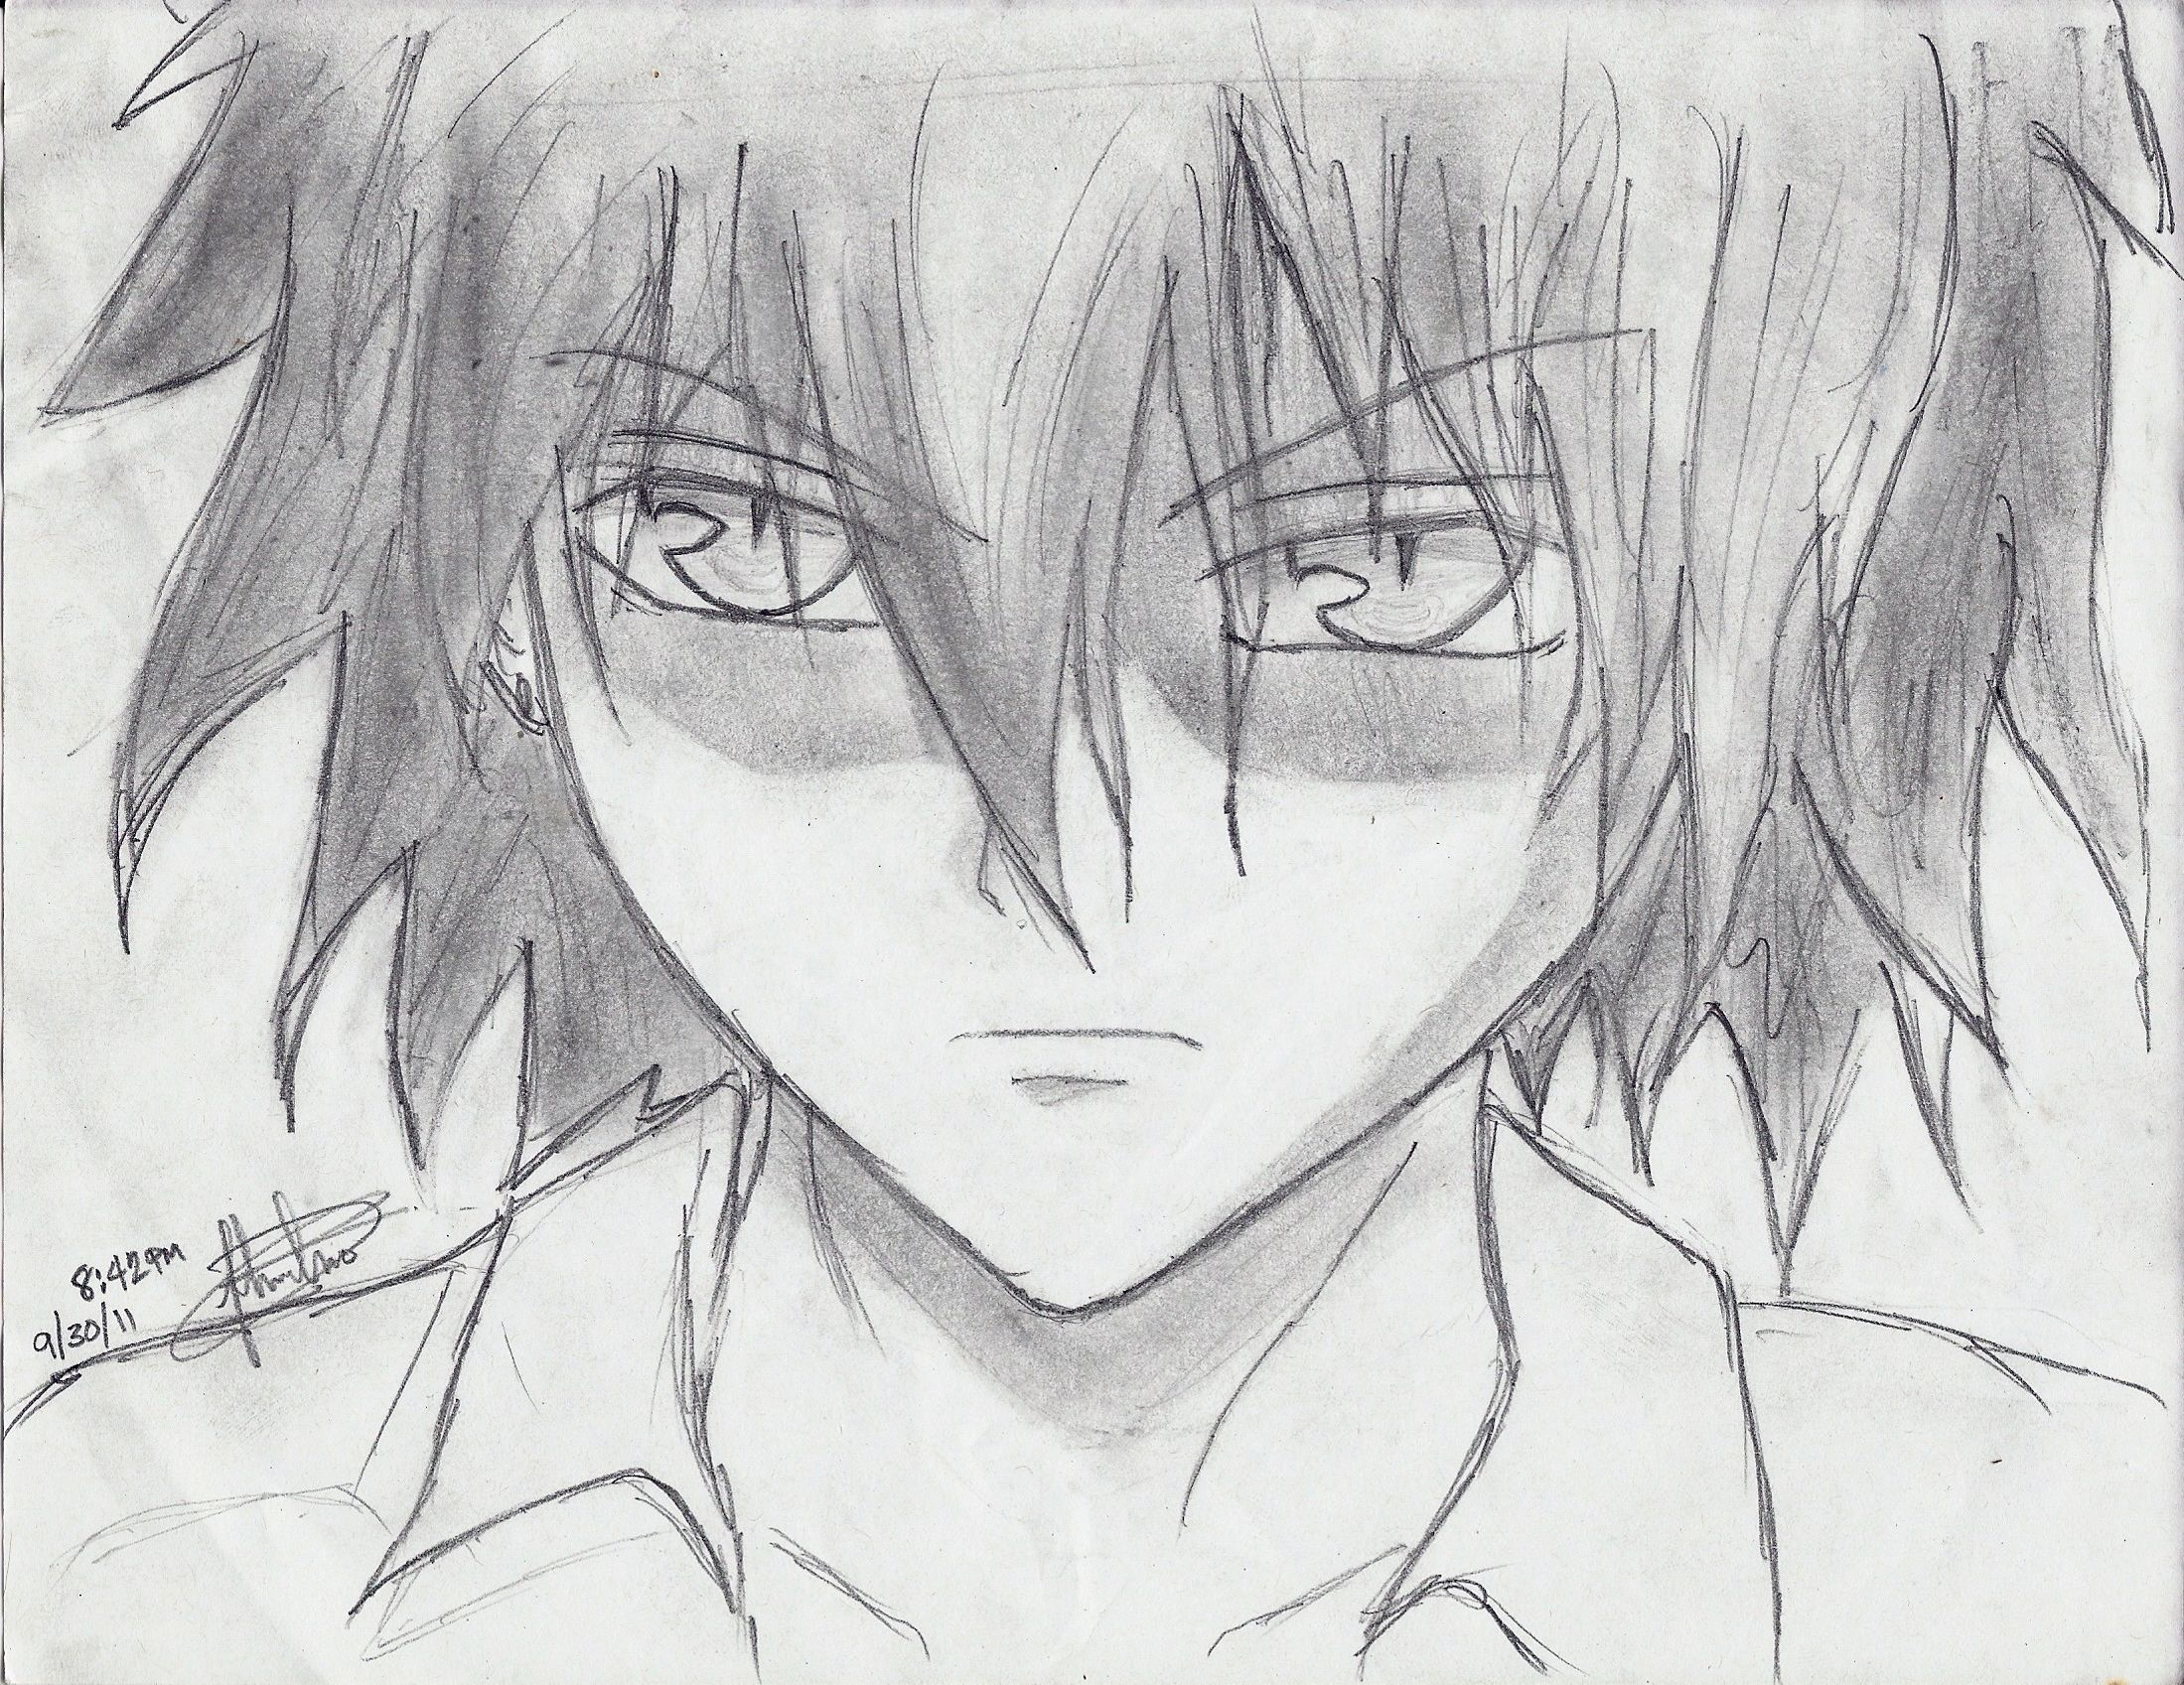 Anime boy drawing easy google search easy drawings pencil drawings anime boy drawing